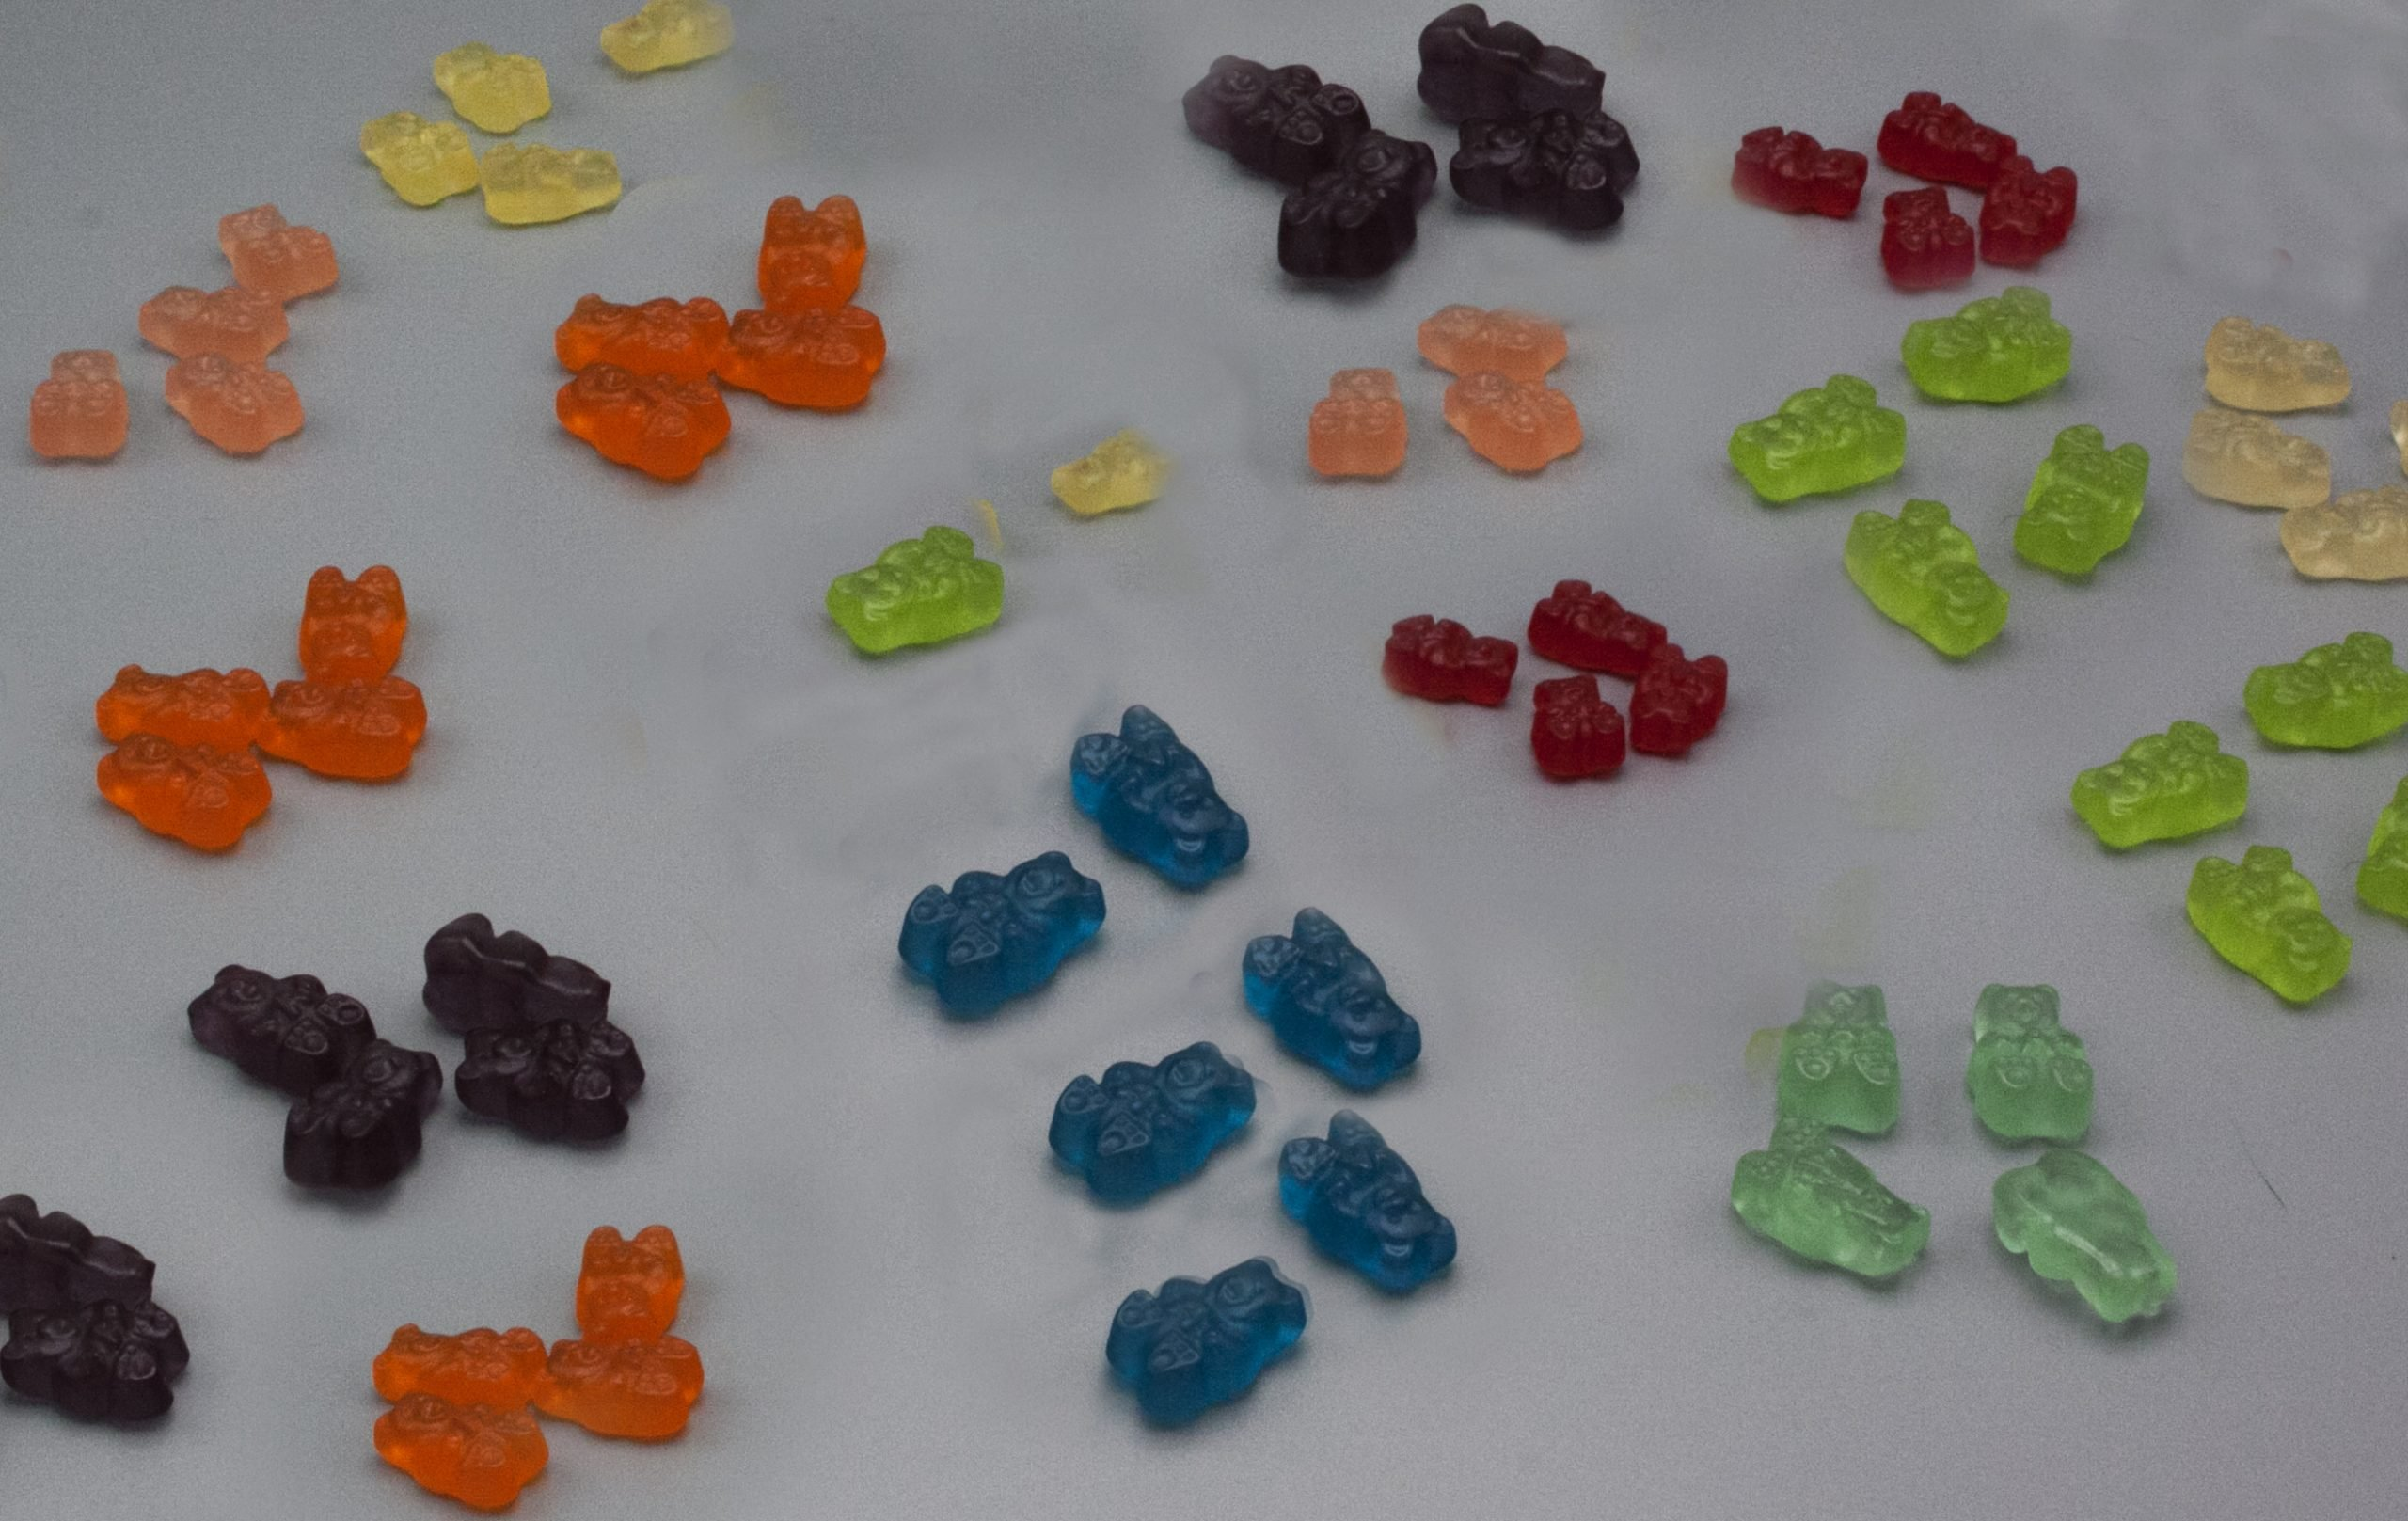 An image of an Albanese Gummi Variety Pack